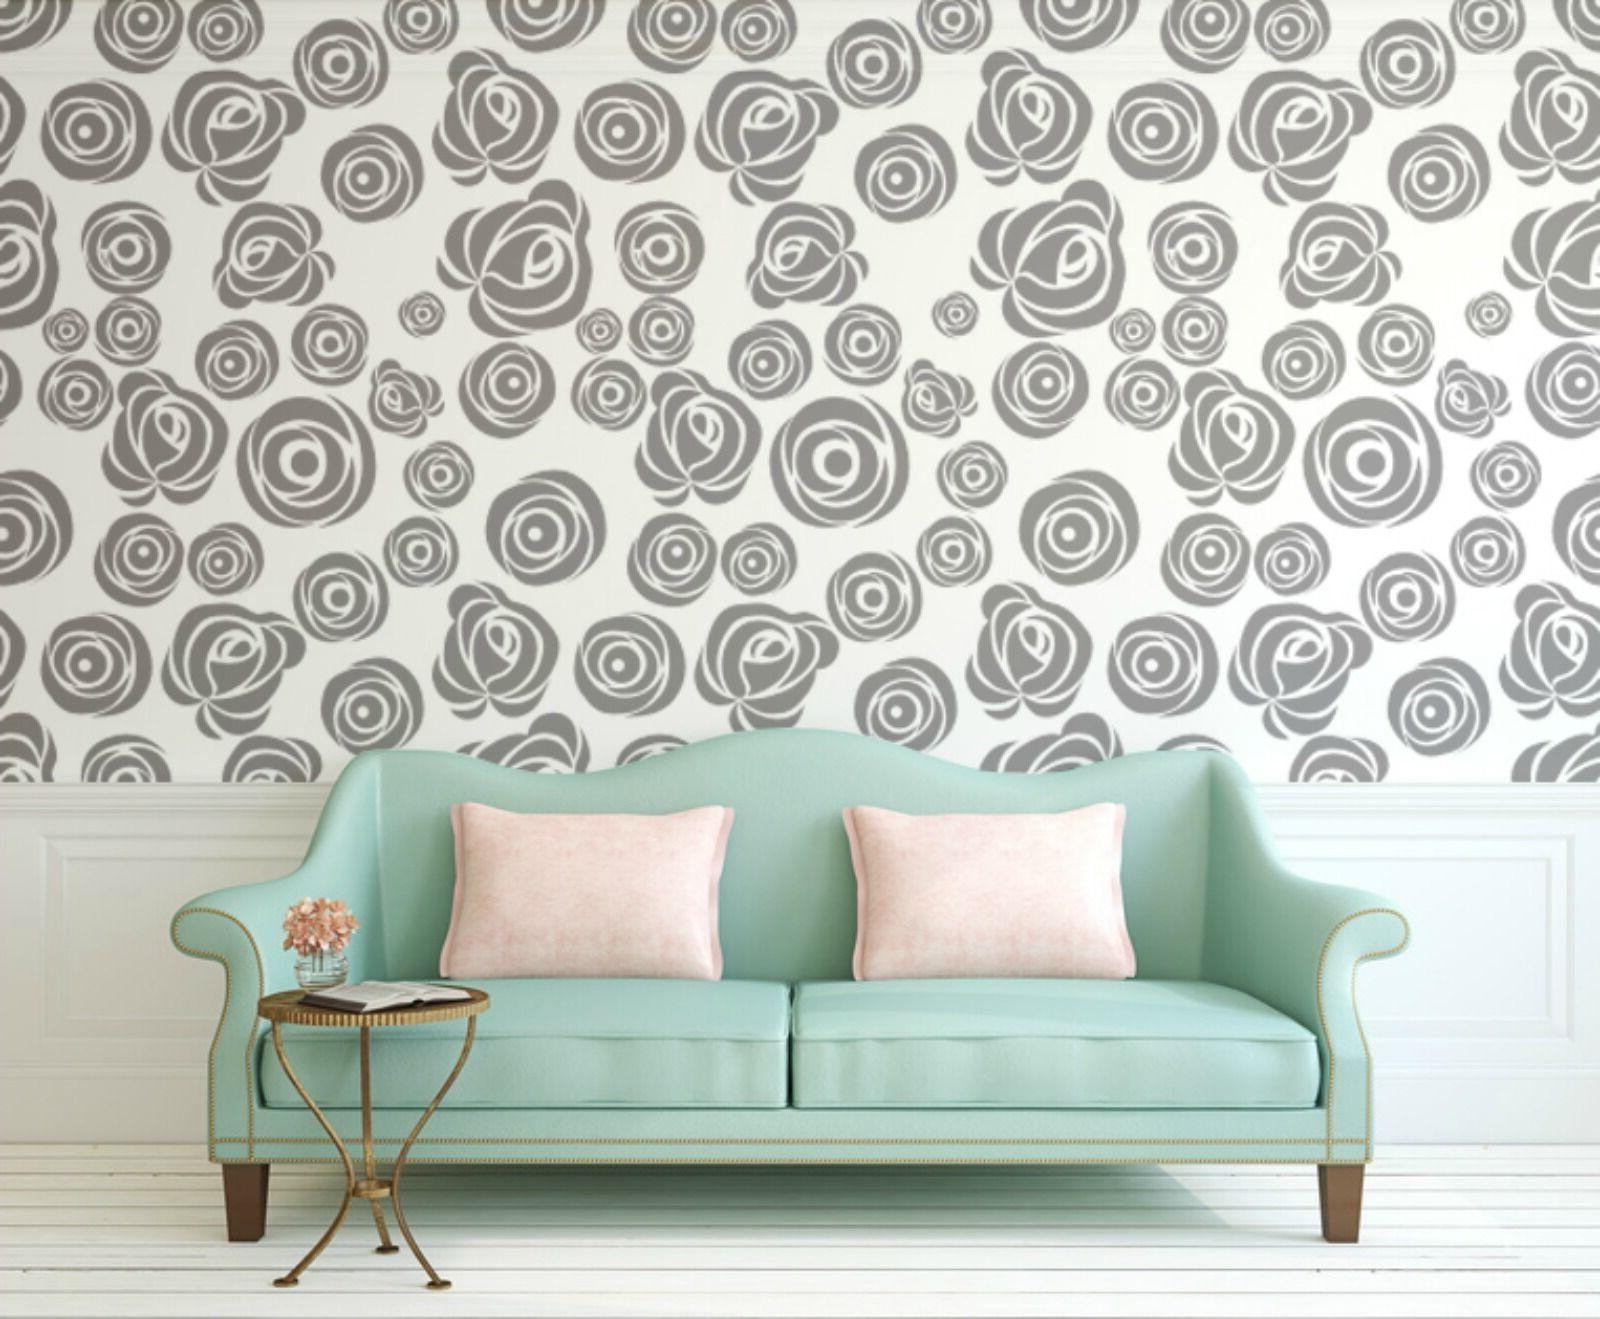 rose wall decal floral wall decals flower